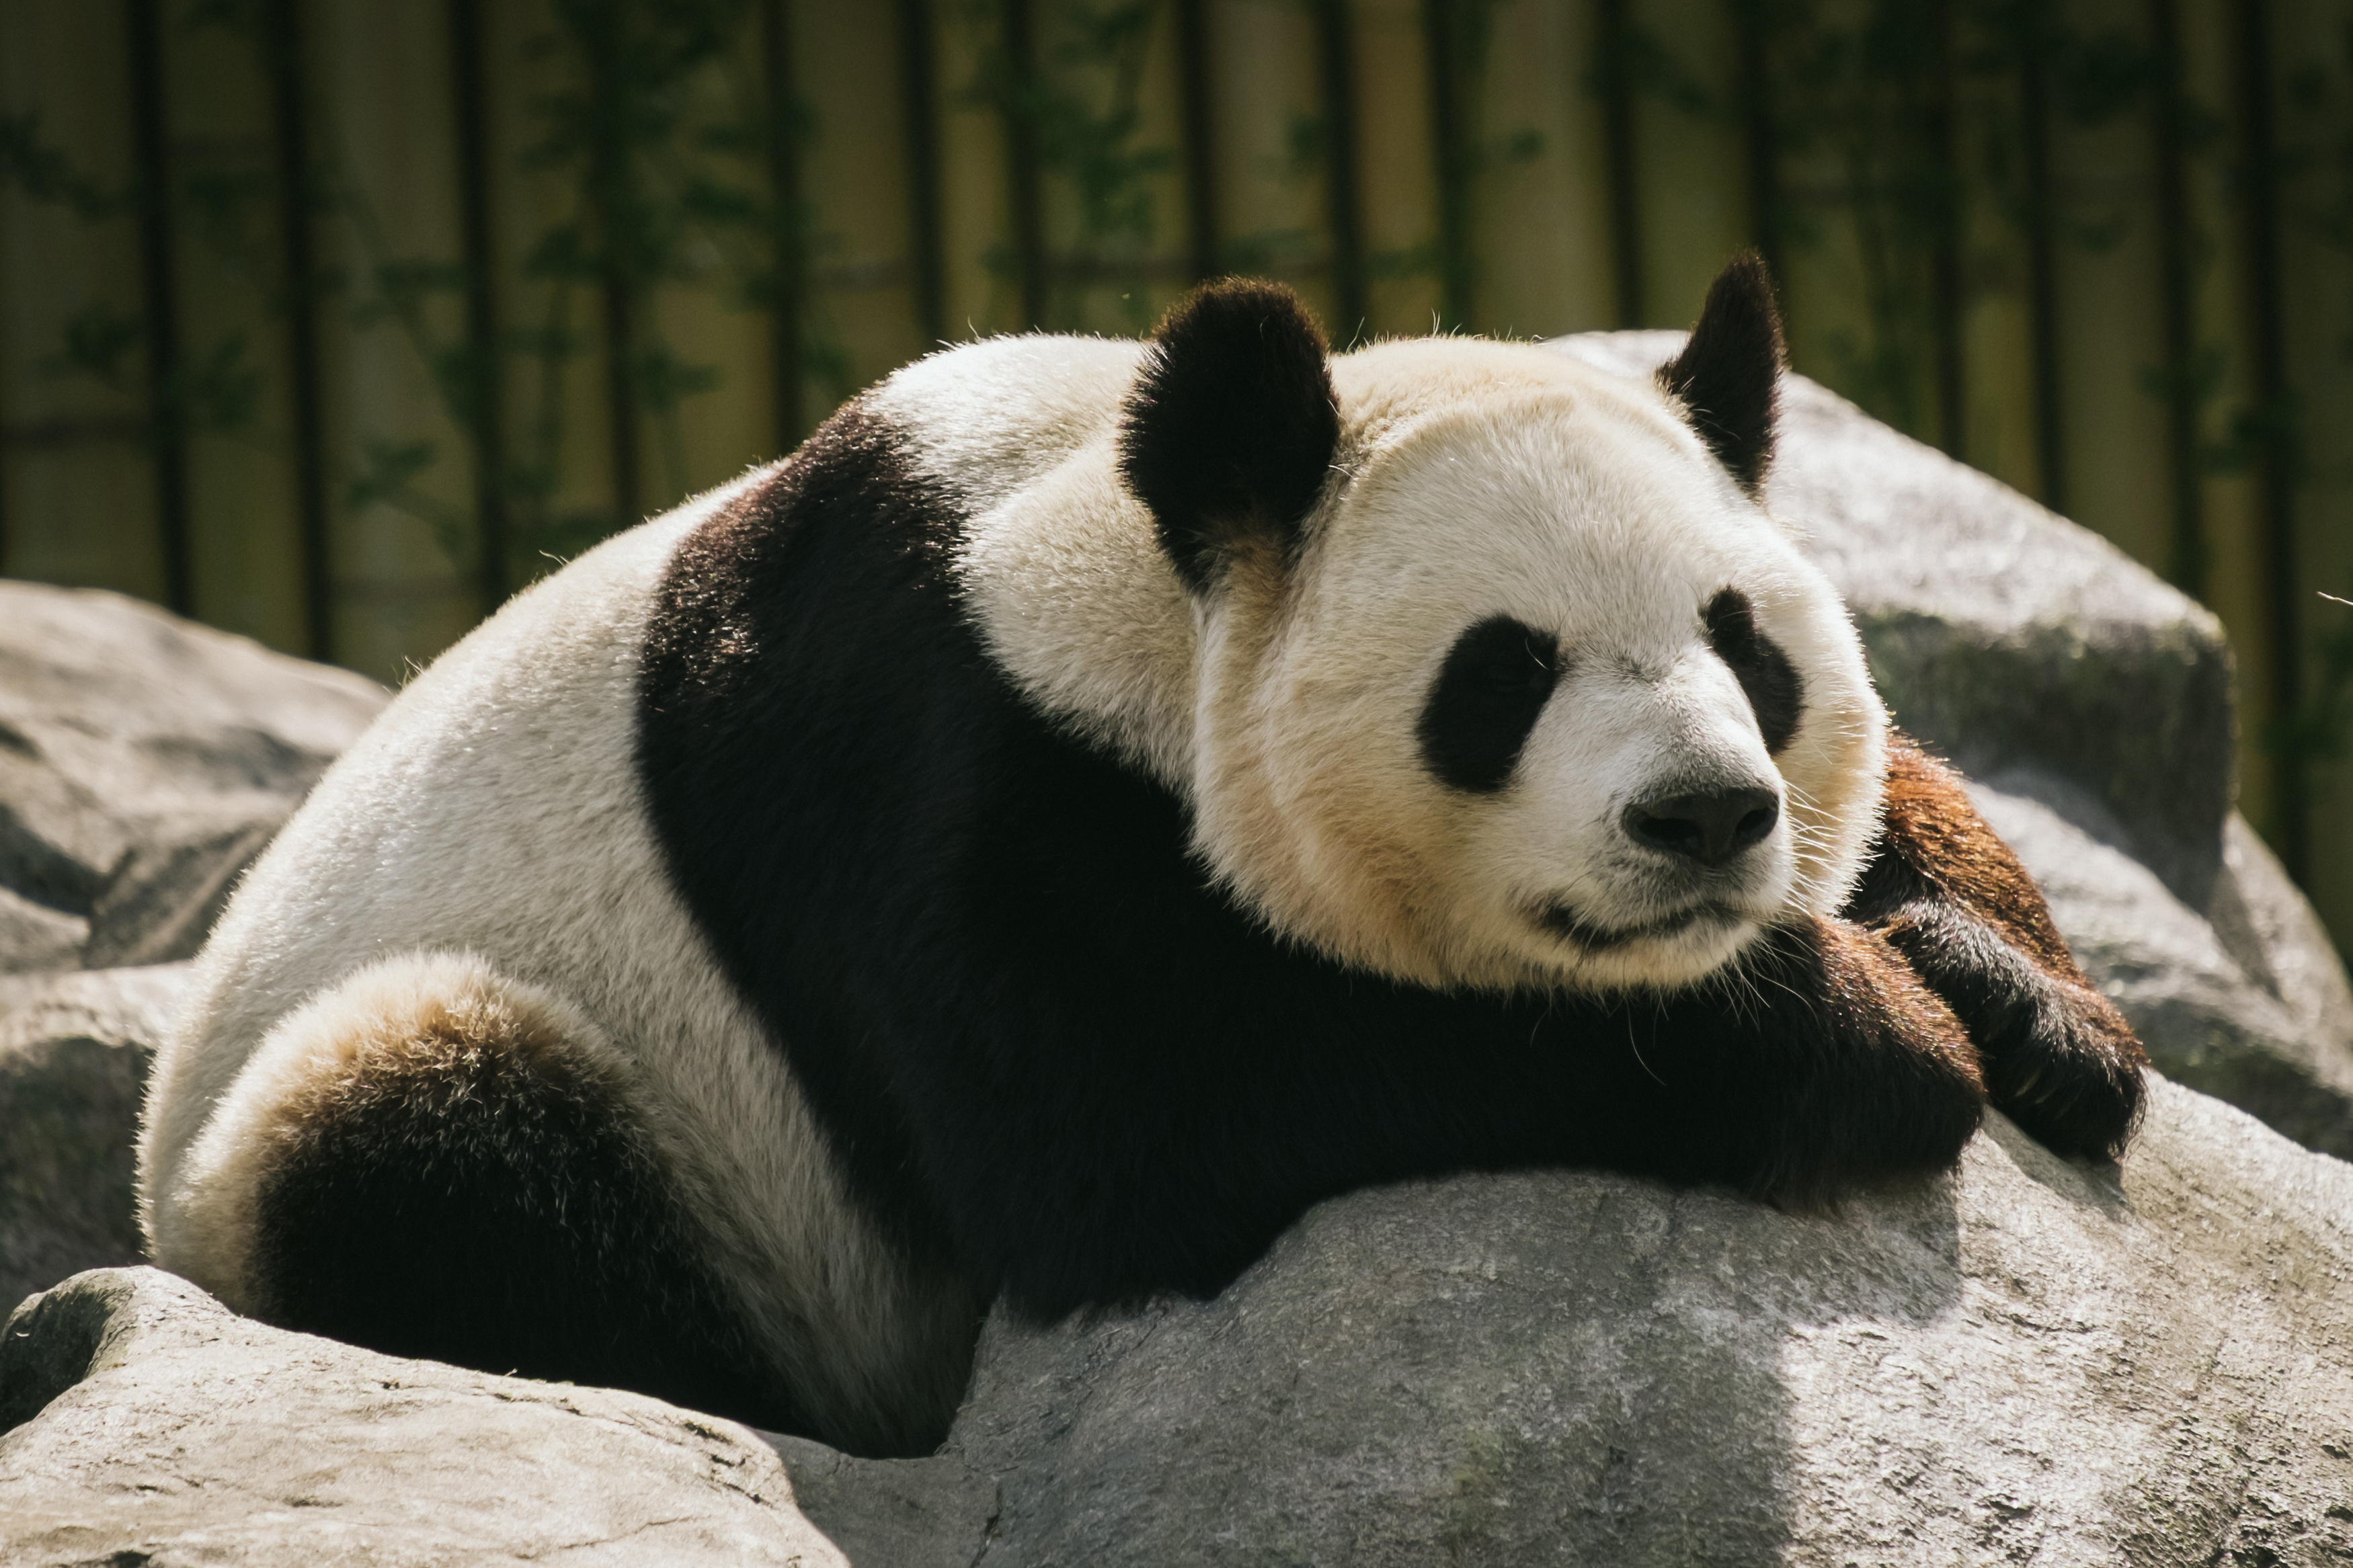 59055 download wallpaper Animals, Panda, Animal, Sleep, Dream screensavers and pictures for free